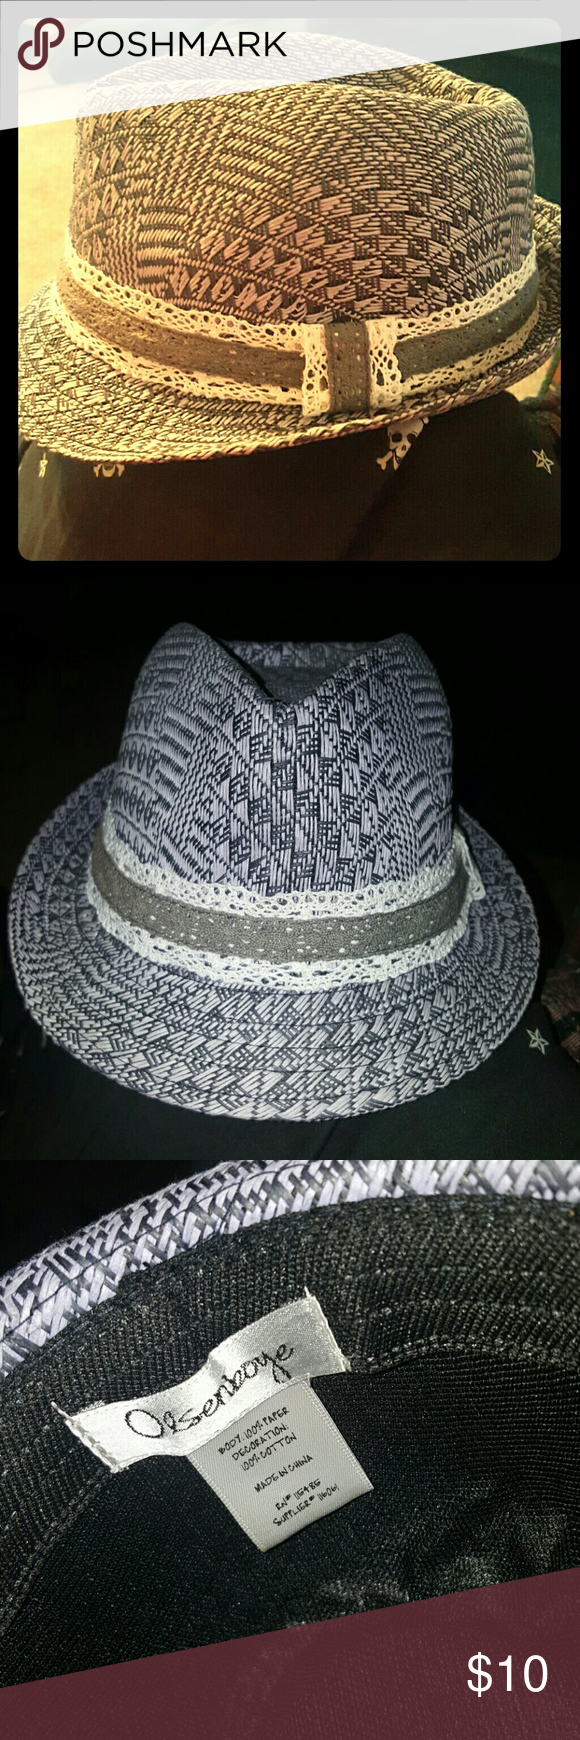 Cute paper fedora with cotton lace band! I got this hat on Posh, it is adorable but doesnt look adorable on me so i am reluctantly reposhing. Although the label says that the body of this hat is constructed entirely of paper, you wouldn't be able to tell, it feels pretty durable. I dont recall if it was new or used when i purchased it but it is in pristine condition. It needs a new loving home! Olsenboye Accessories Hats